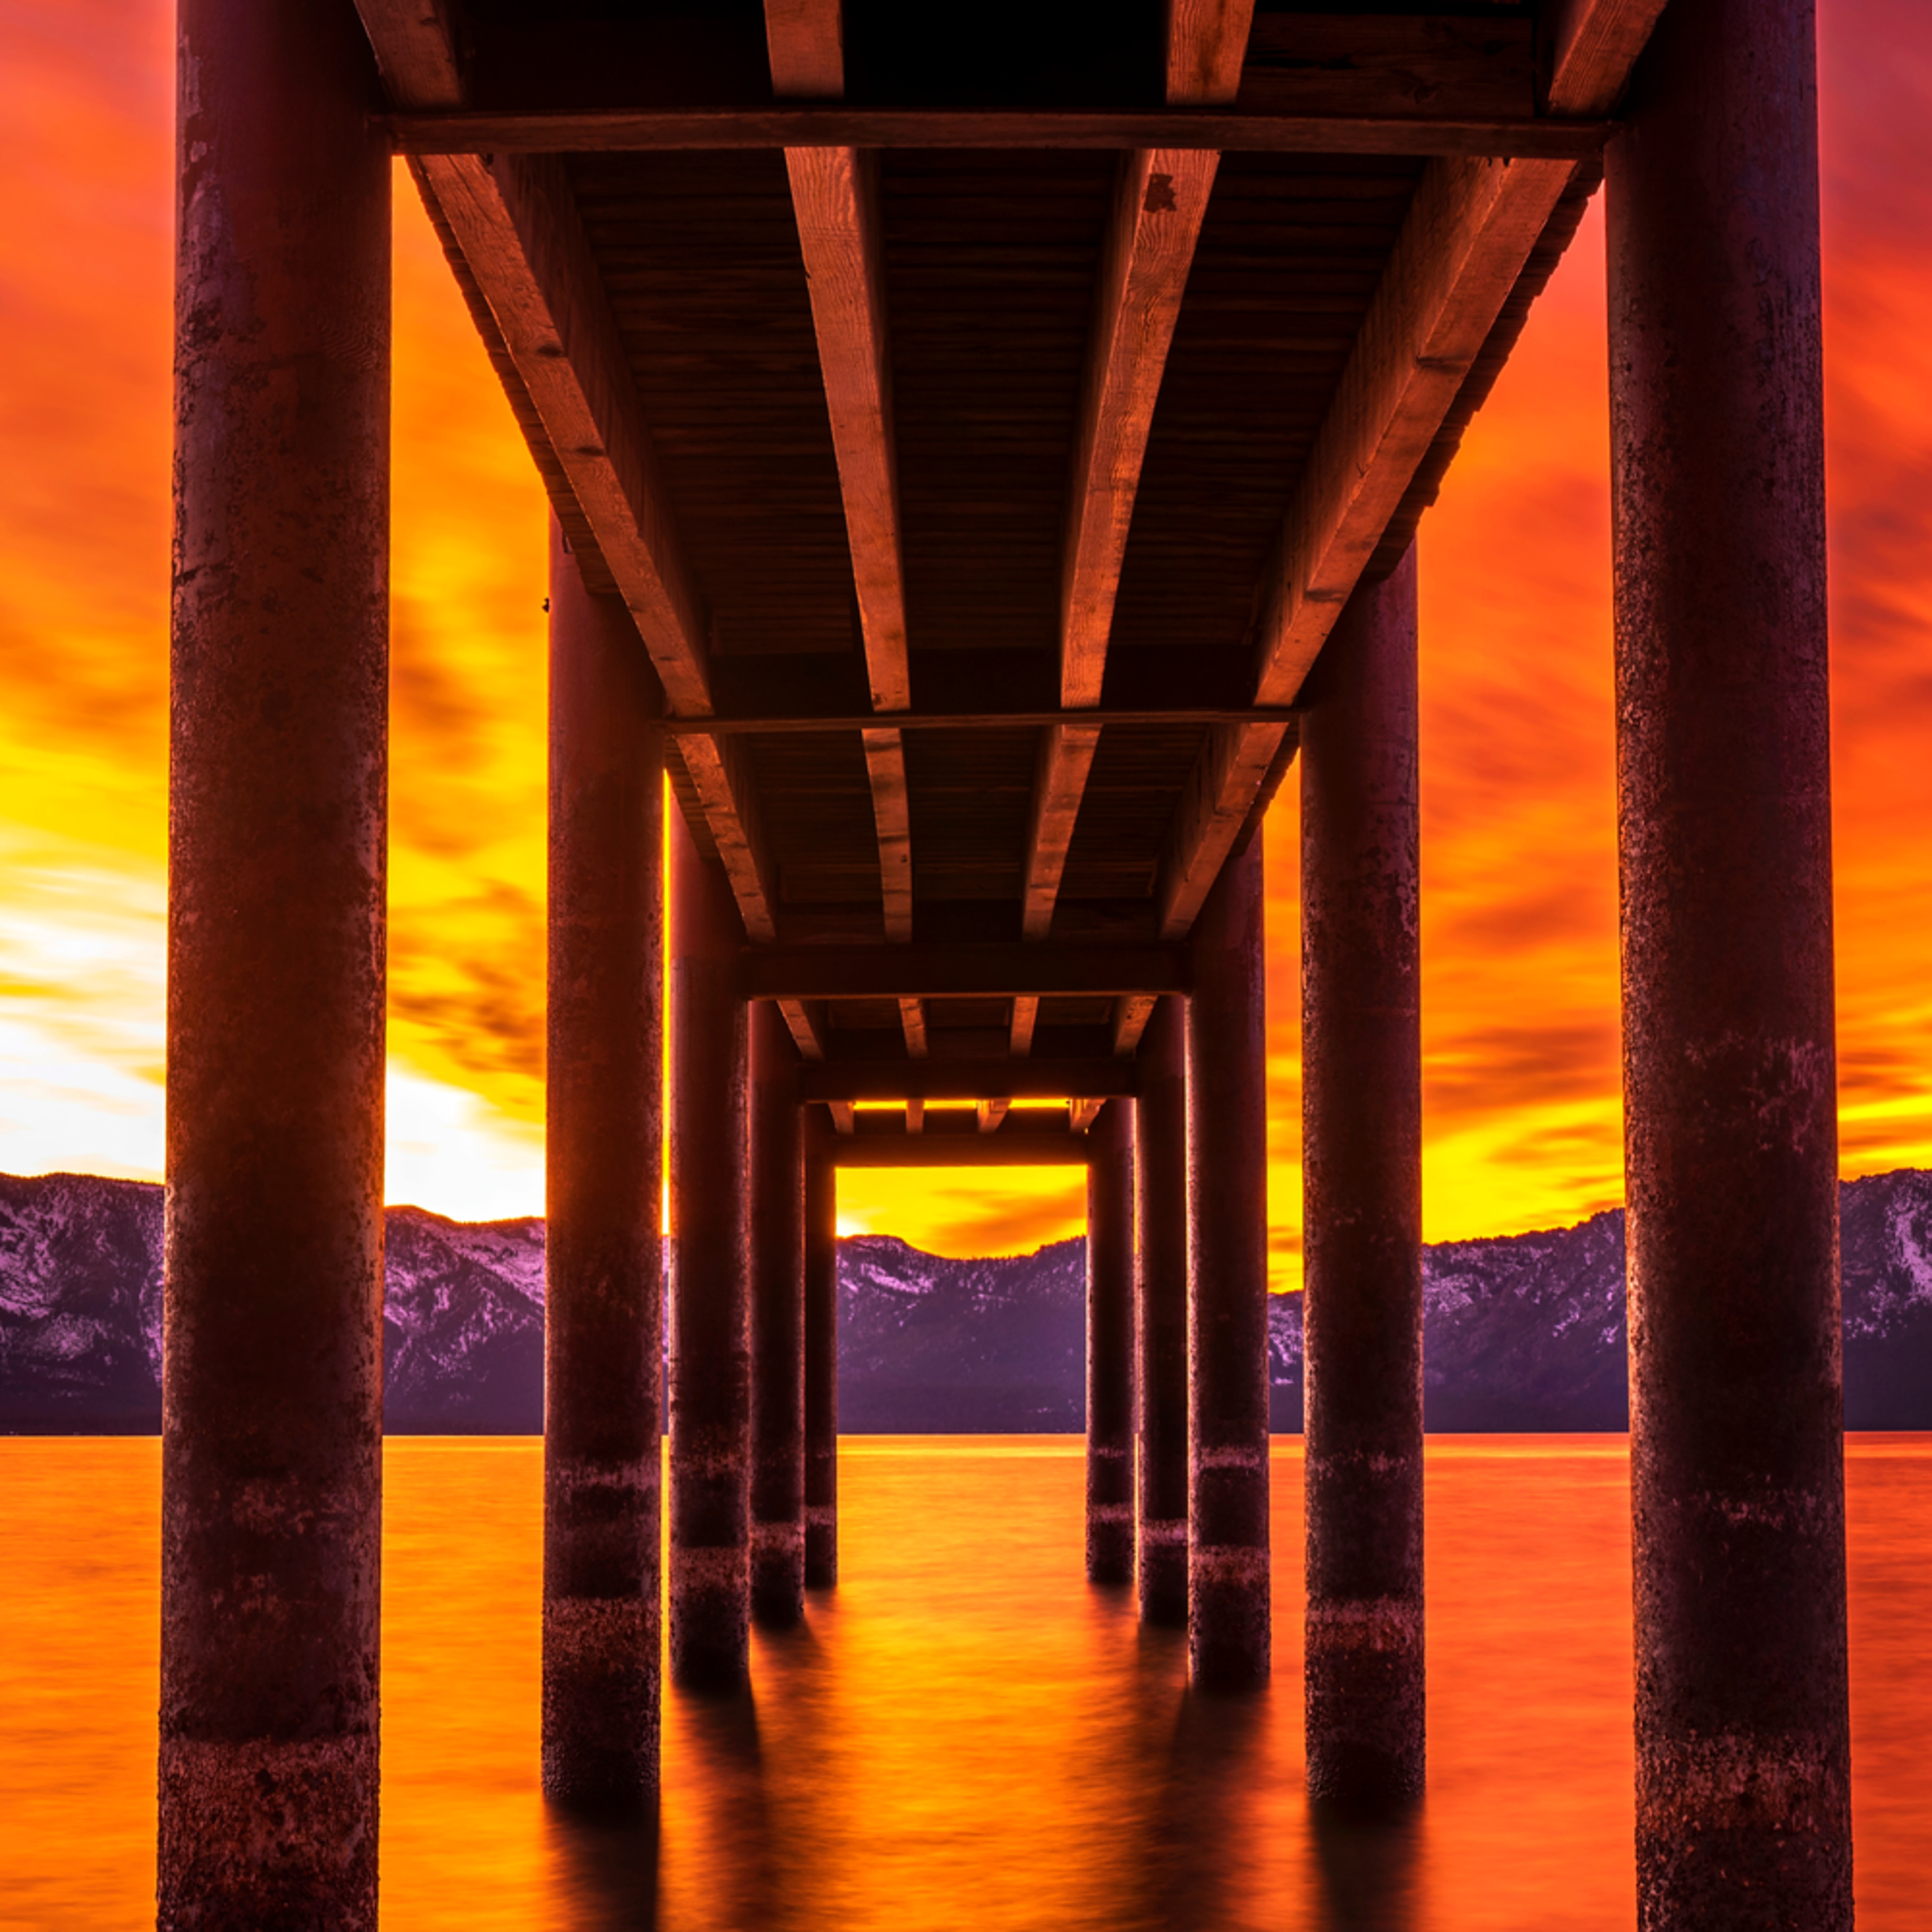 Under the dock sunset pano color correction ehf9kd